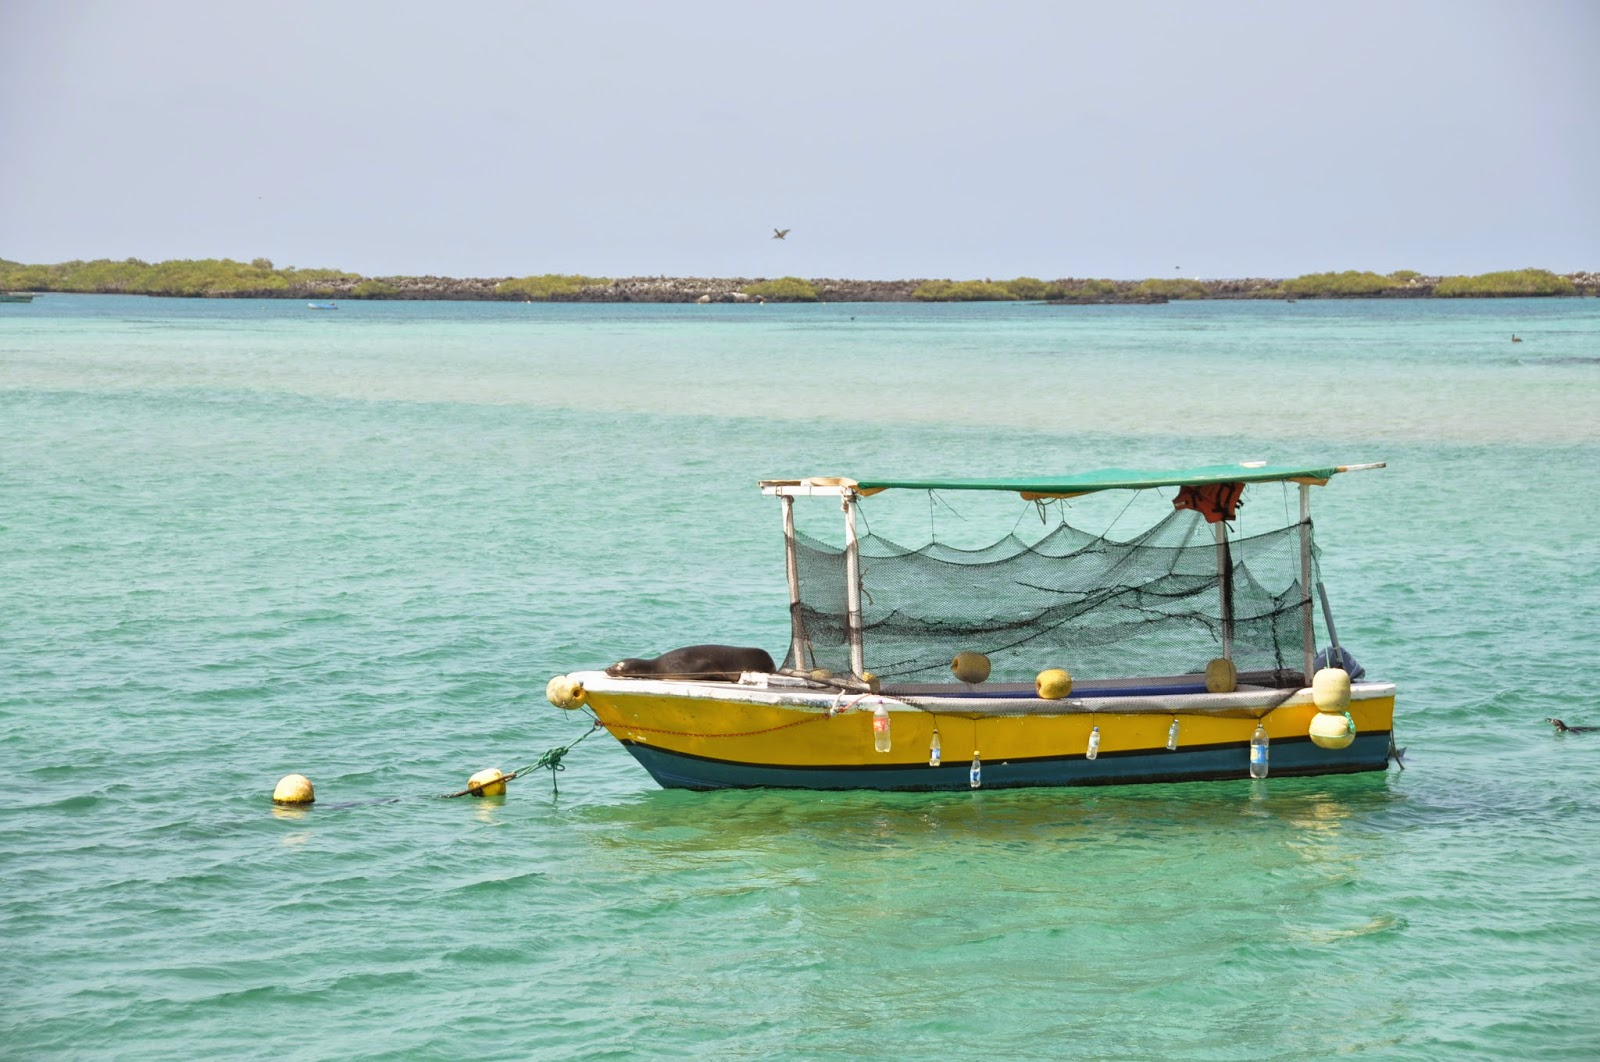 Boat Galapagos Islands